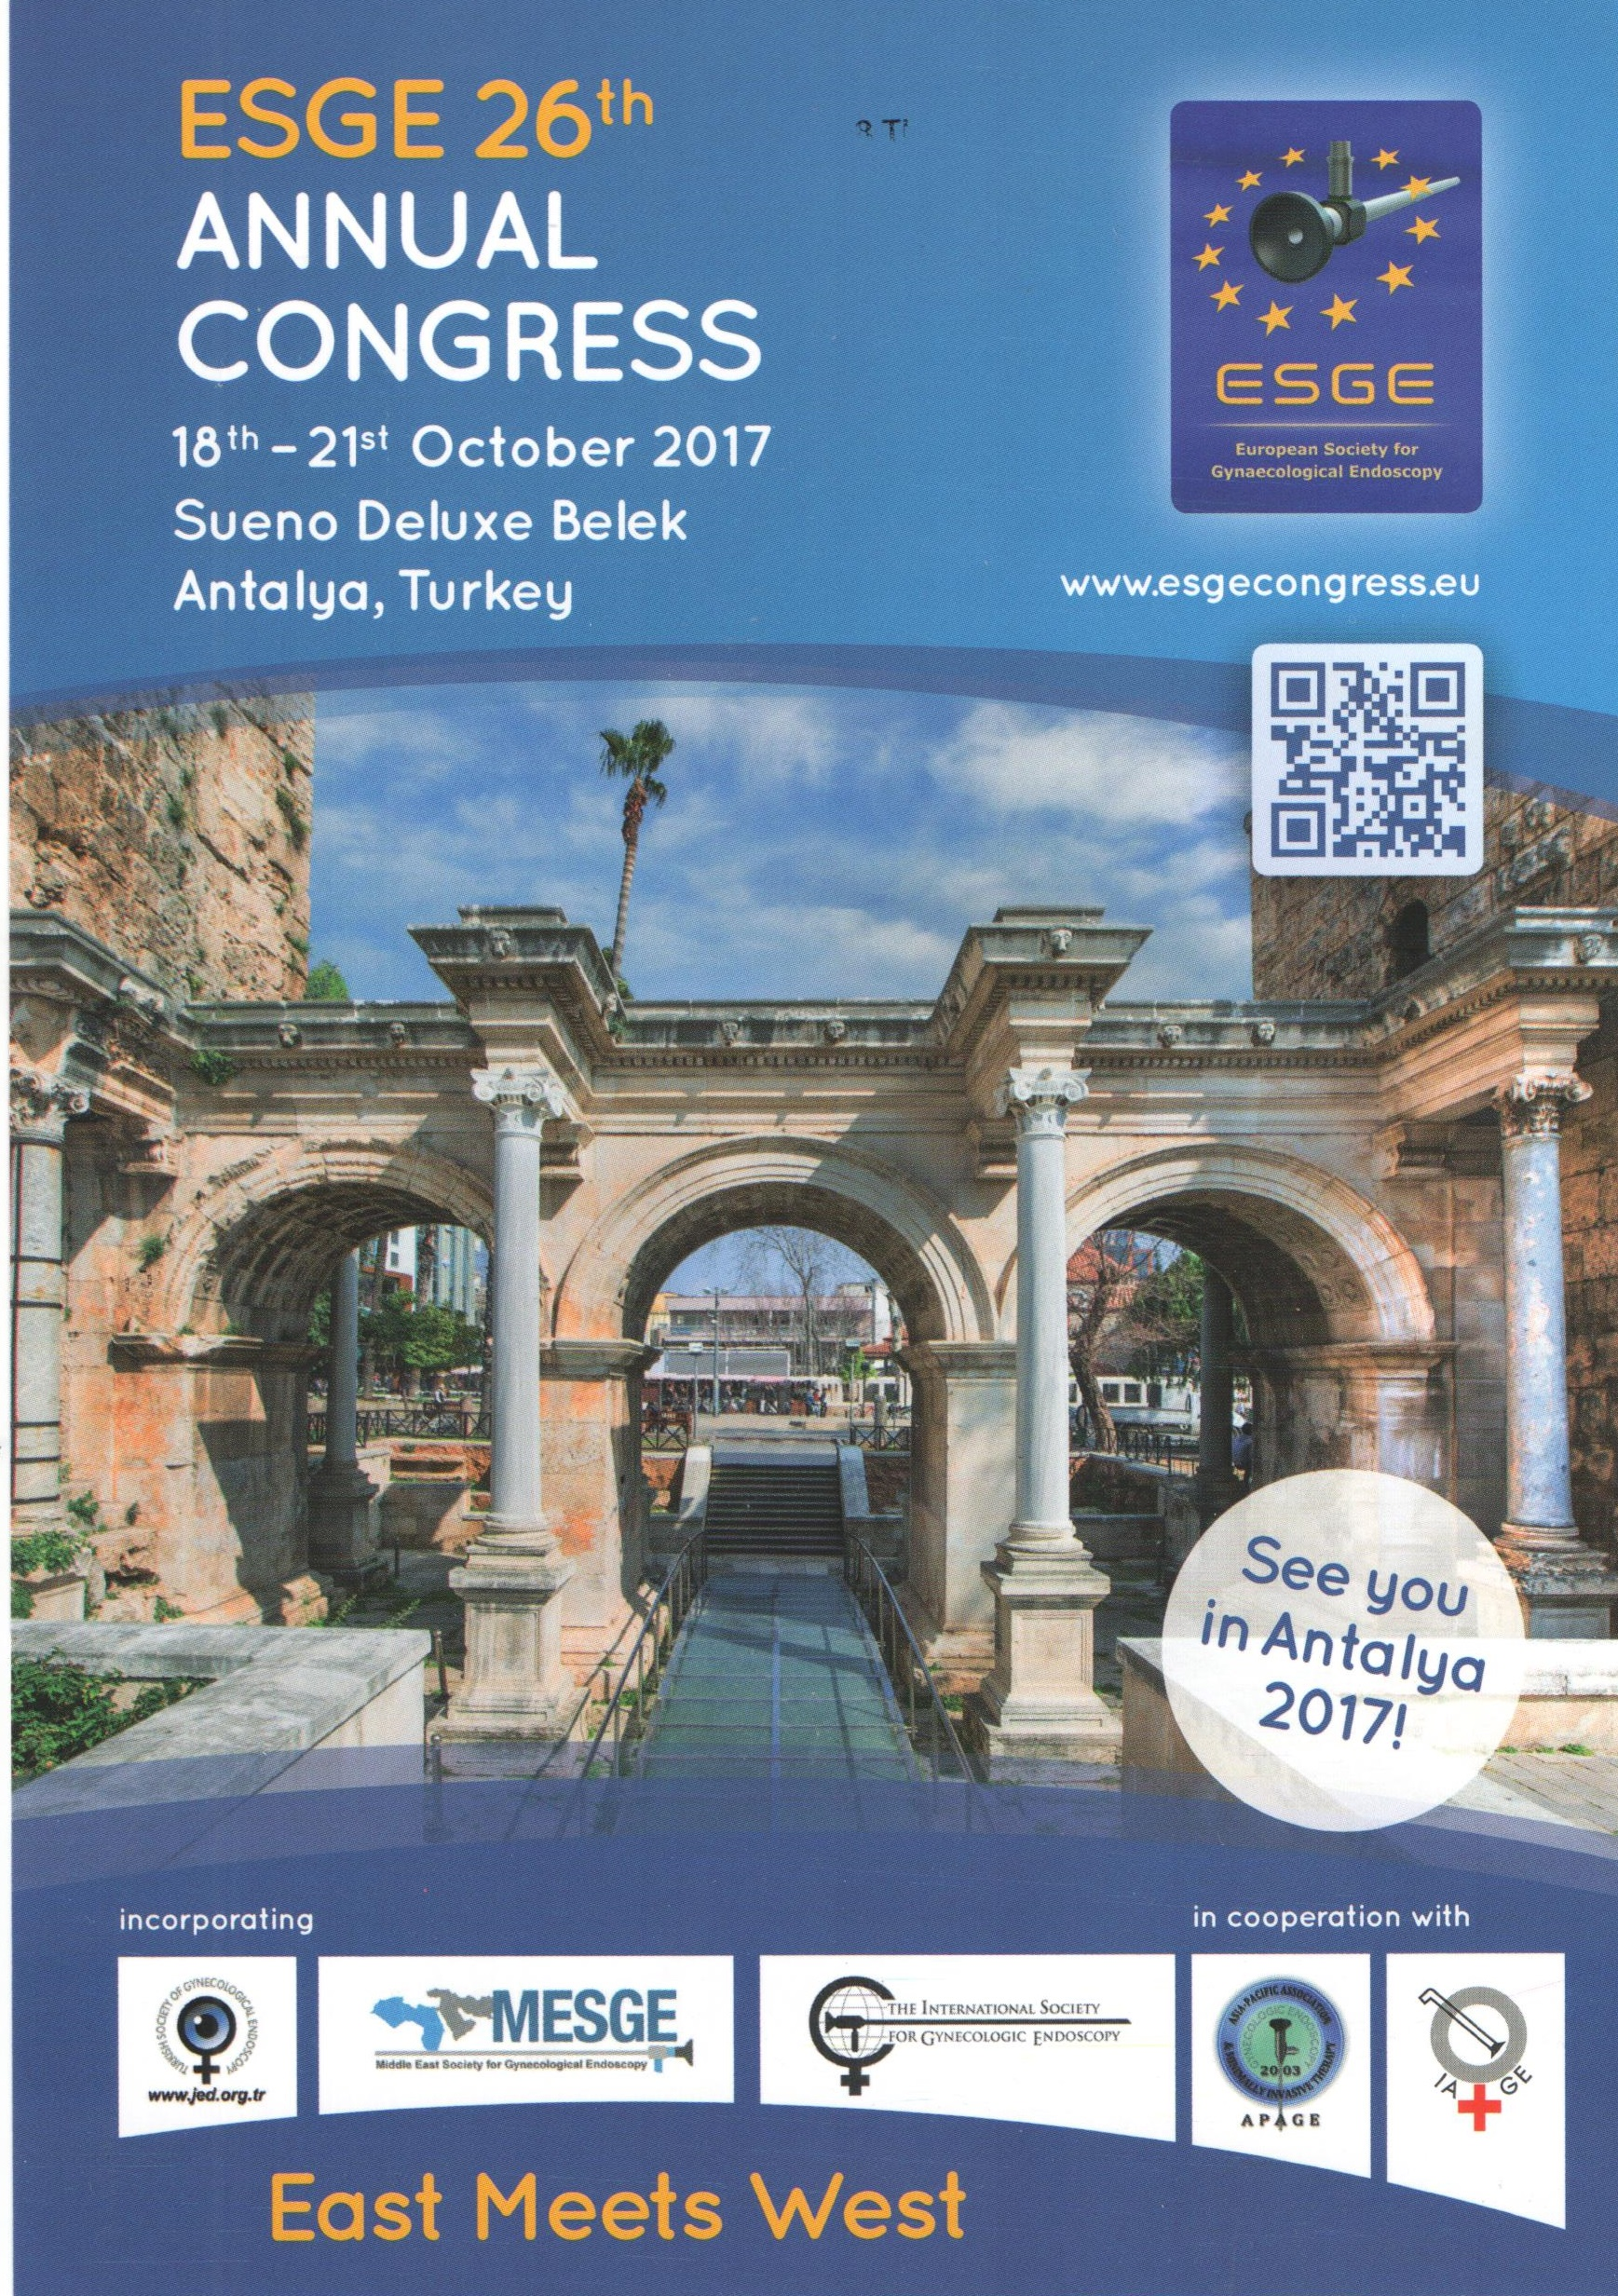 ESGE 26th Annual Congress